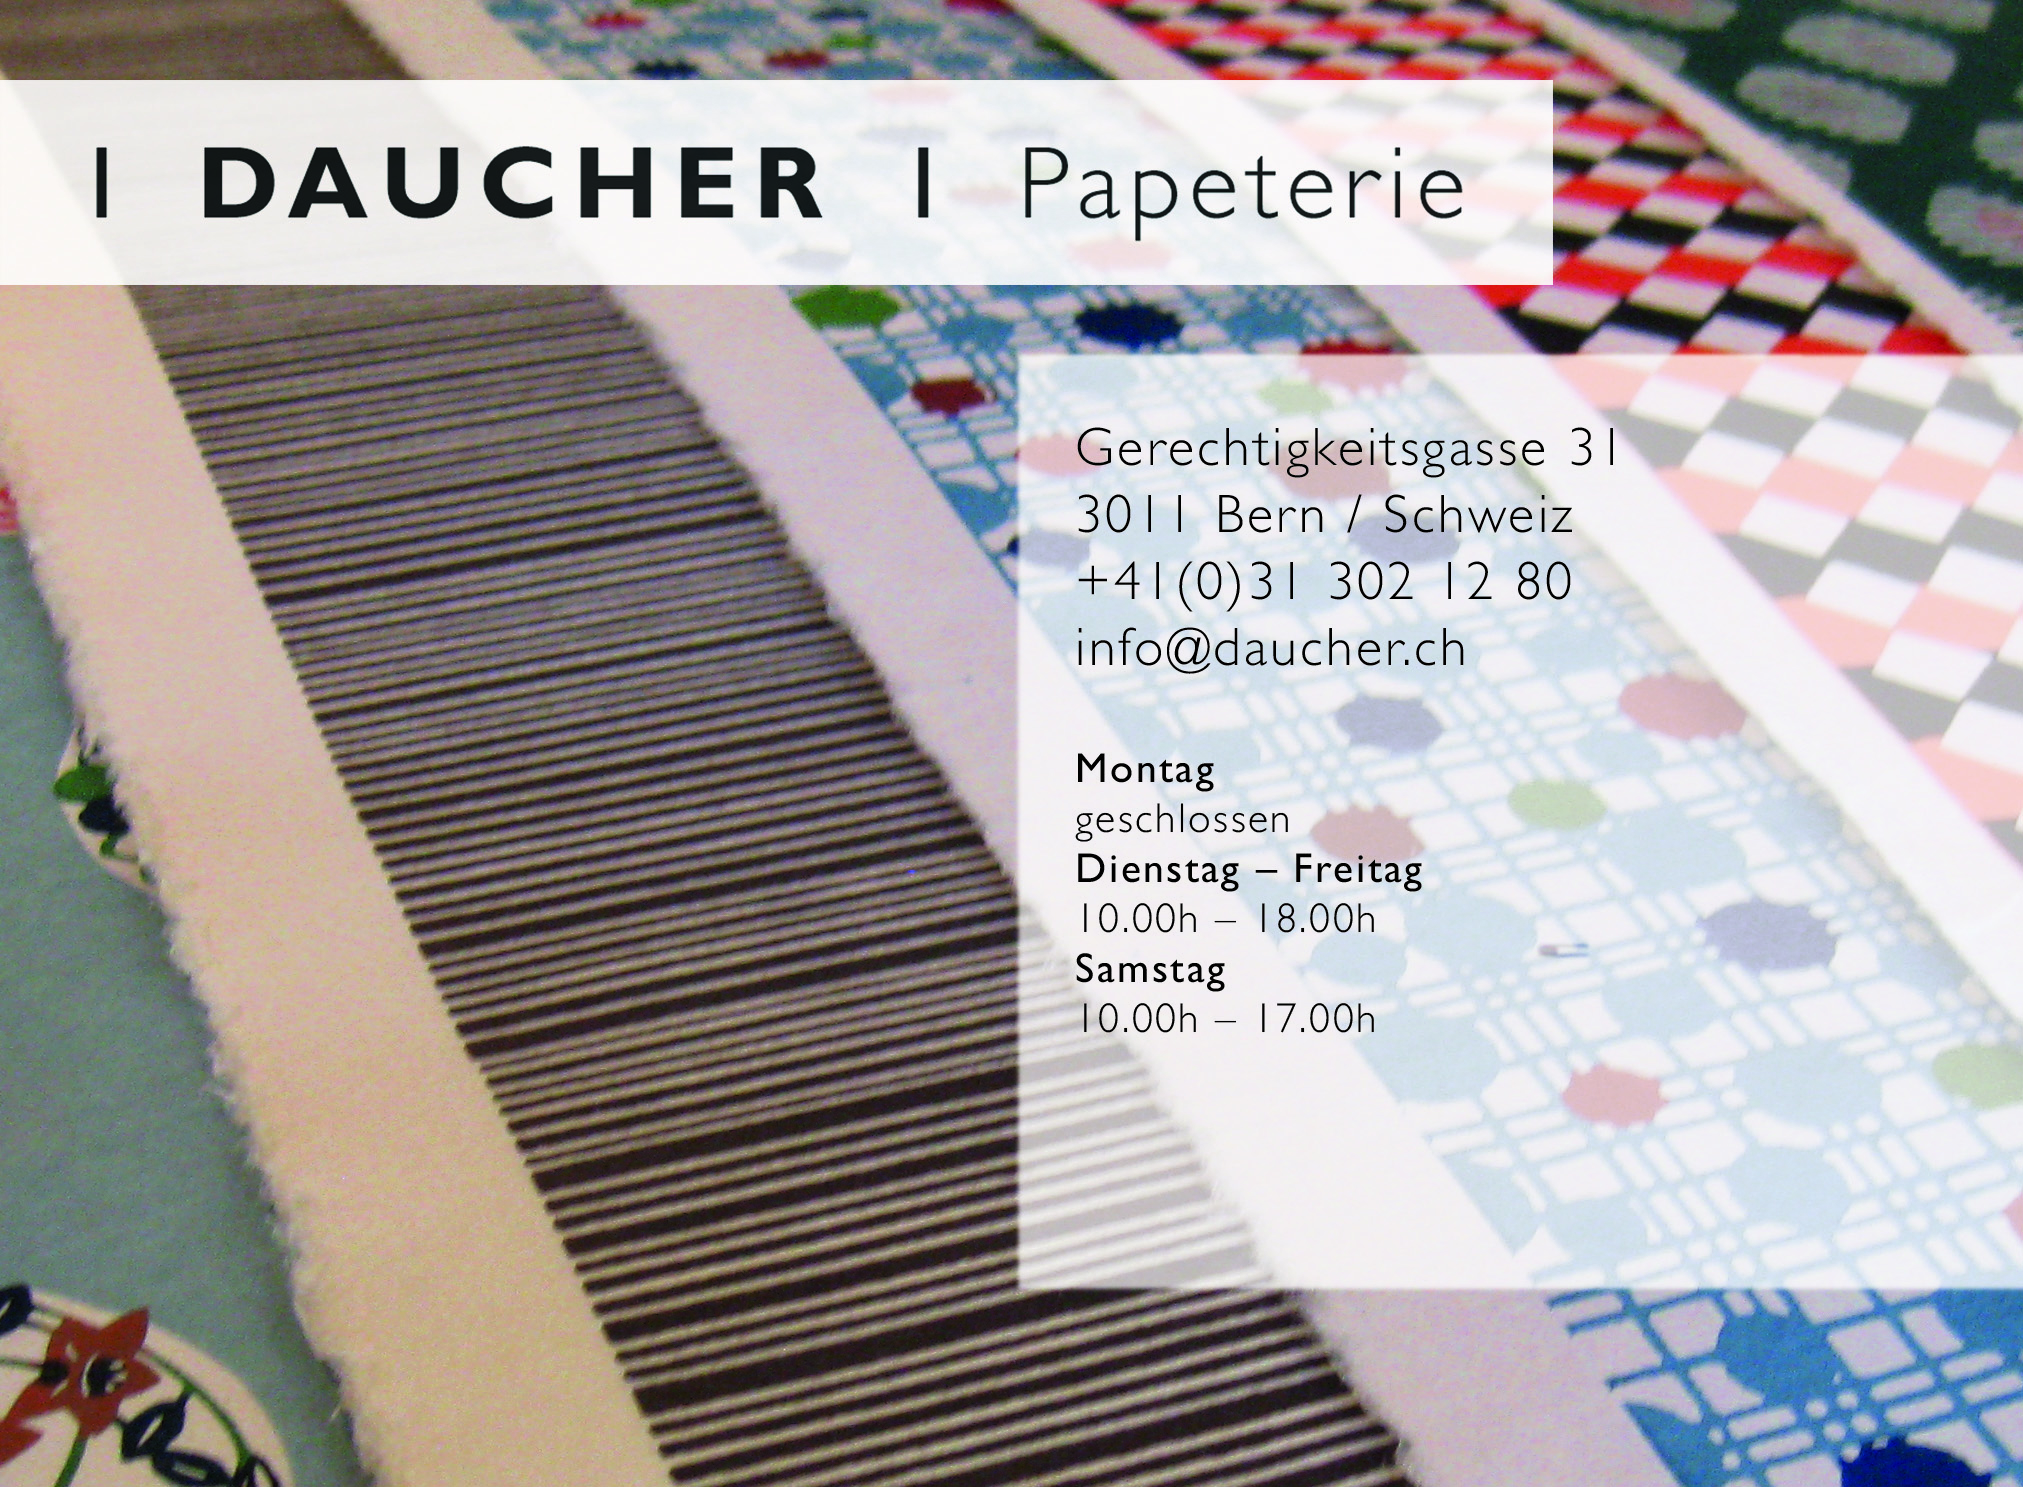 Daucher Papeterie Placeholder Image